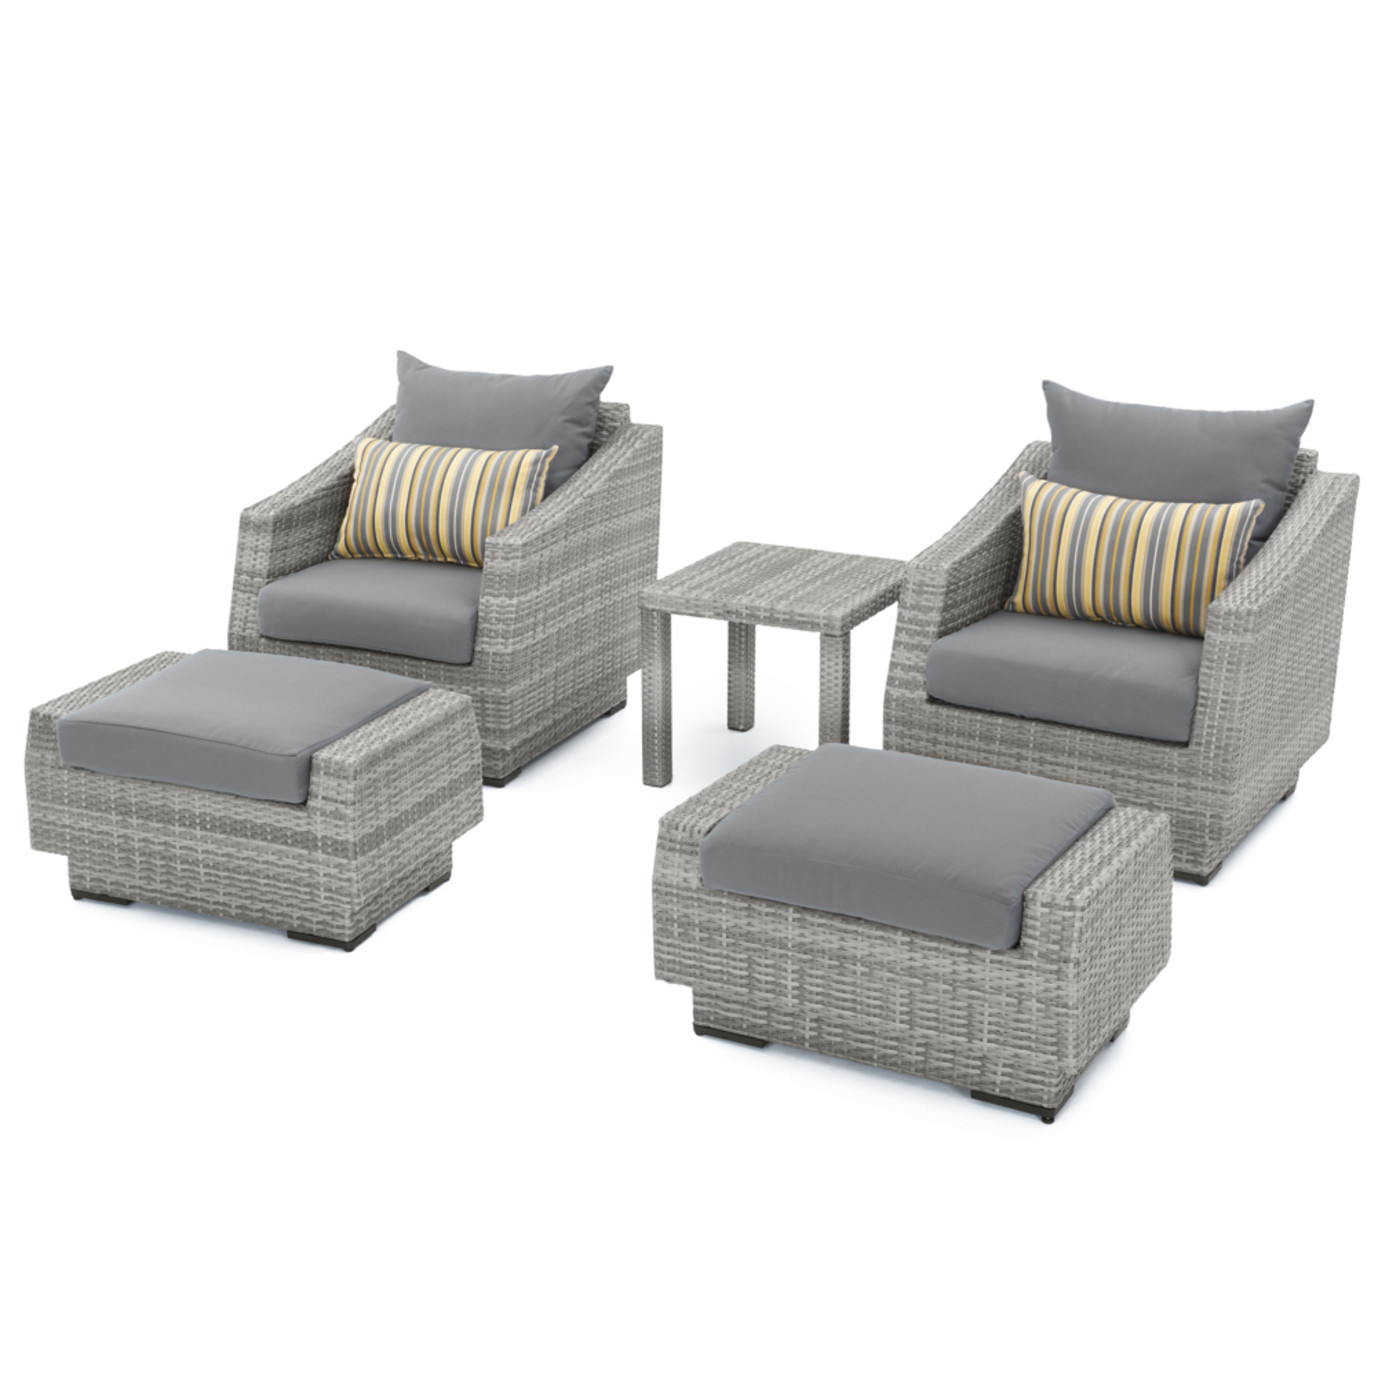 Cannes™ 20 Piece Outdoor Estate Set - Charcoal Gray